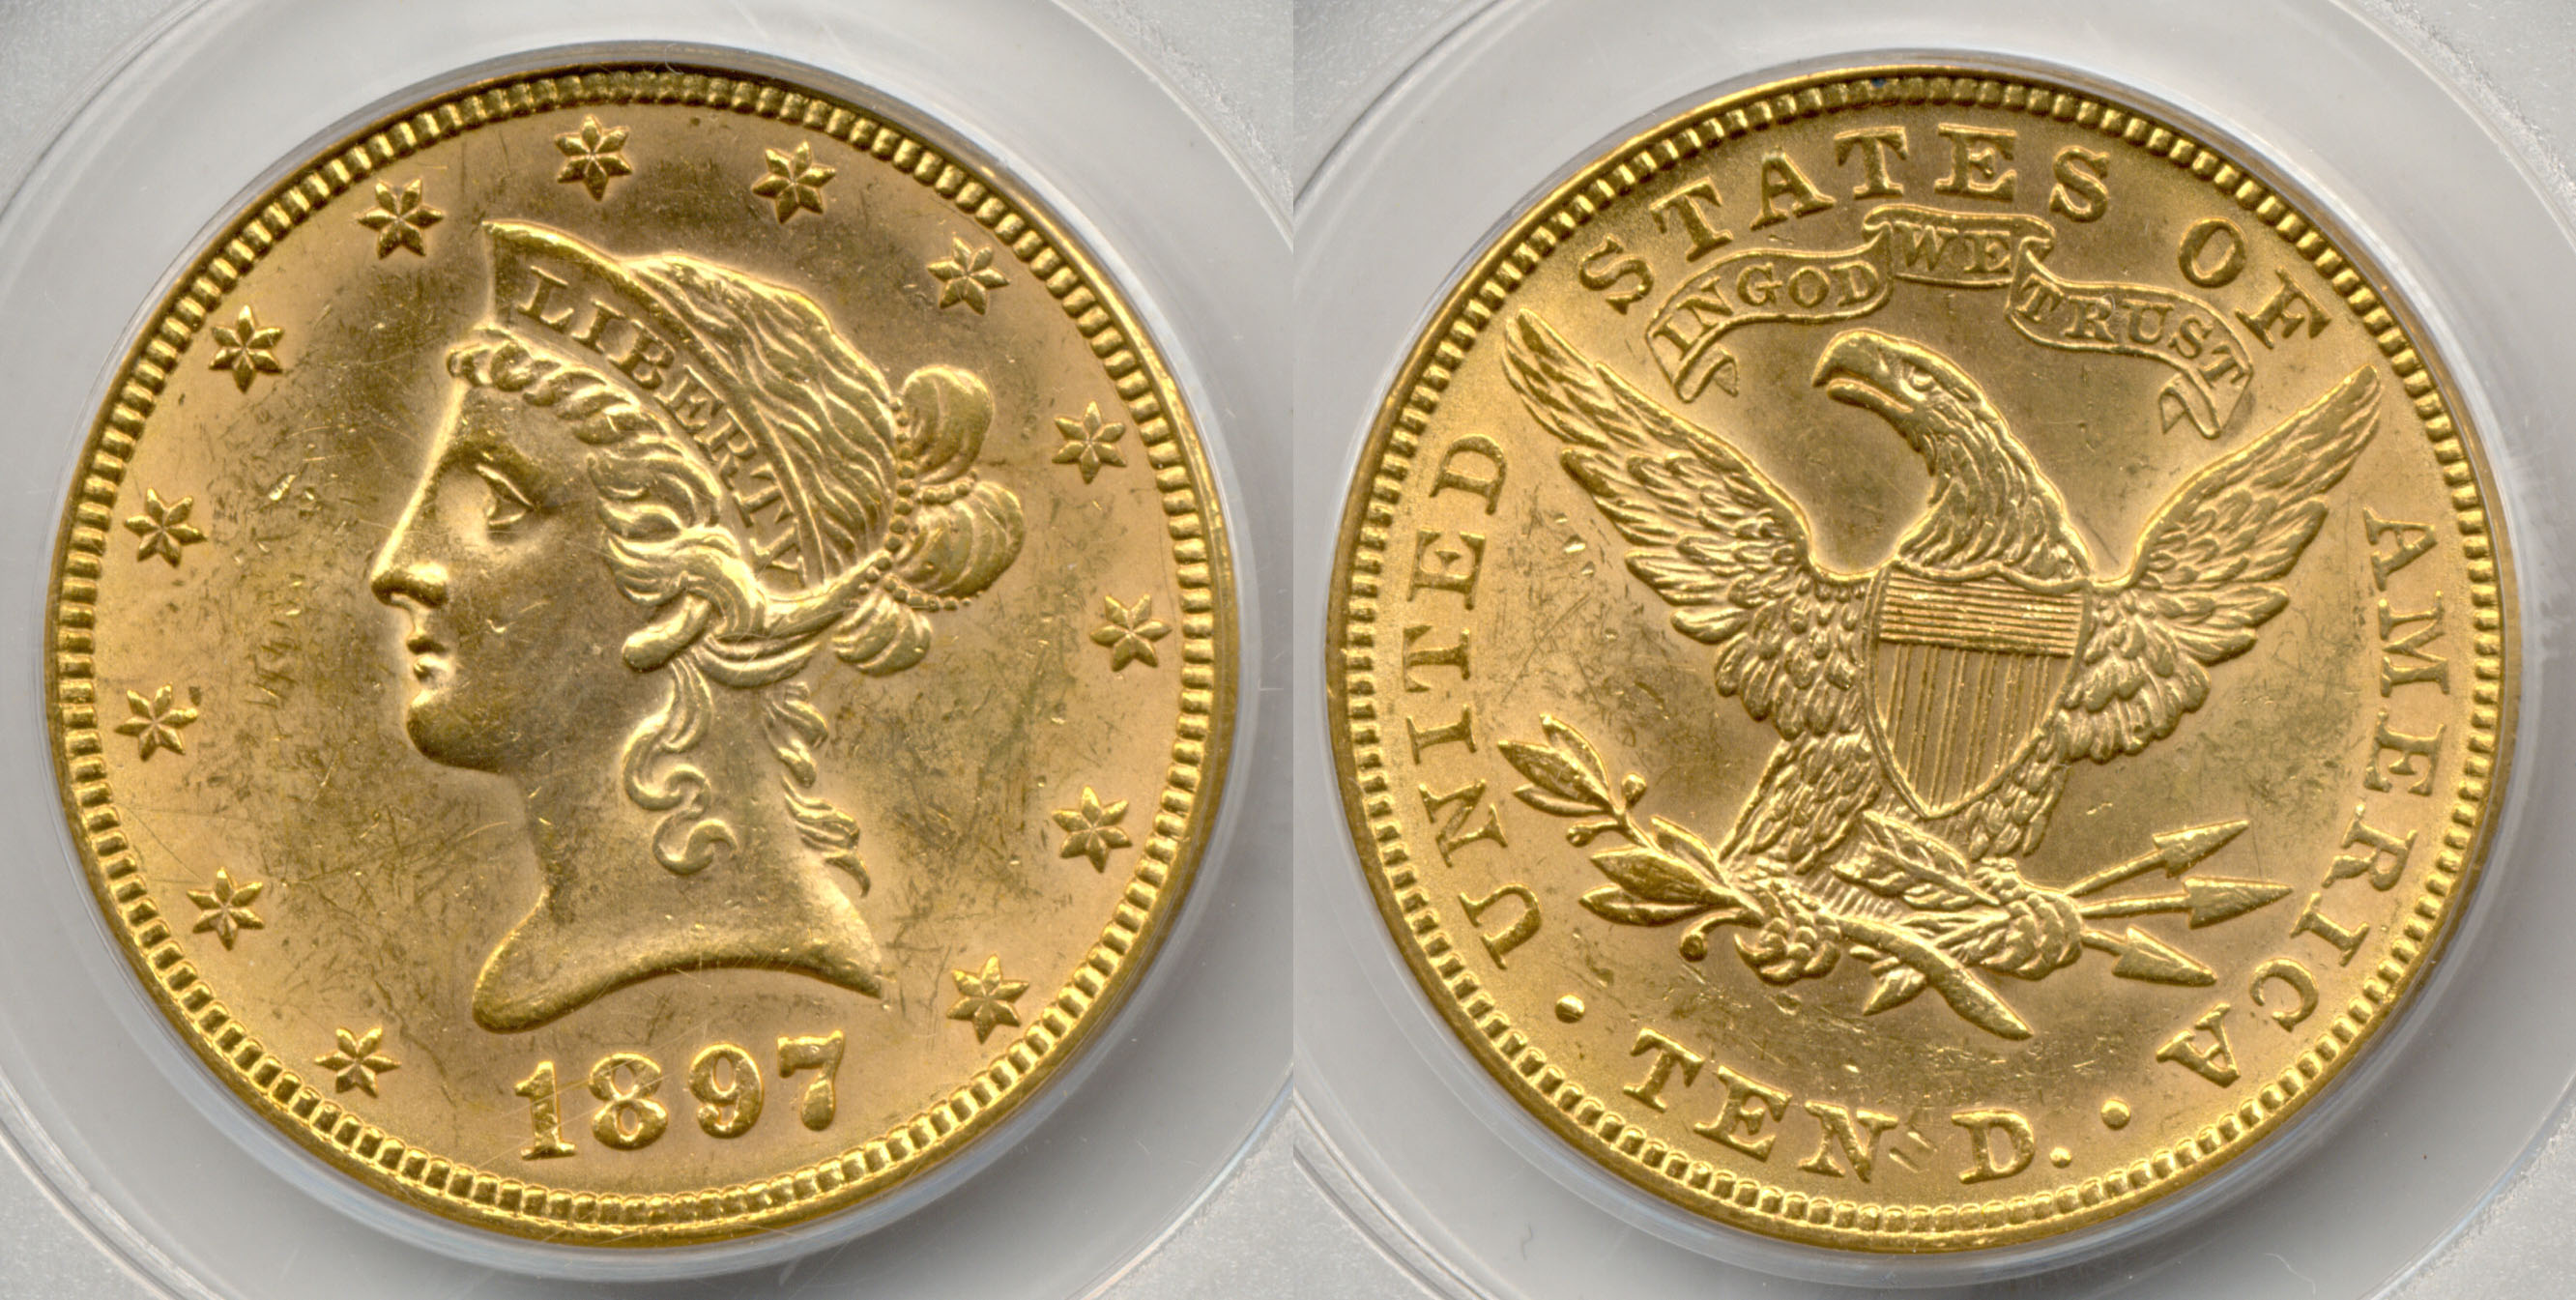 1897 Ten Dollar Gold Eagle PCGS AU-58